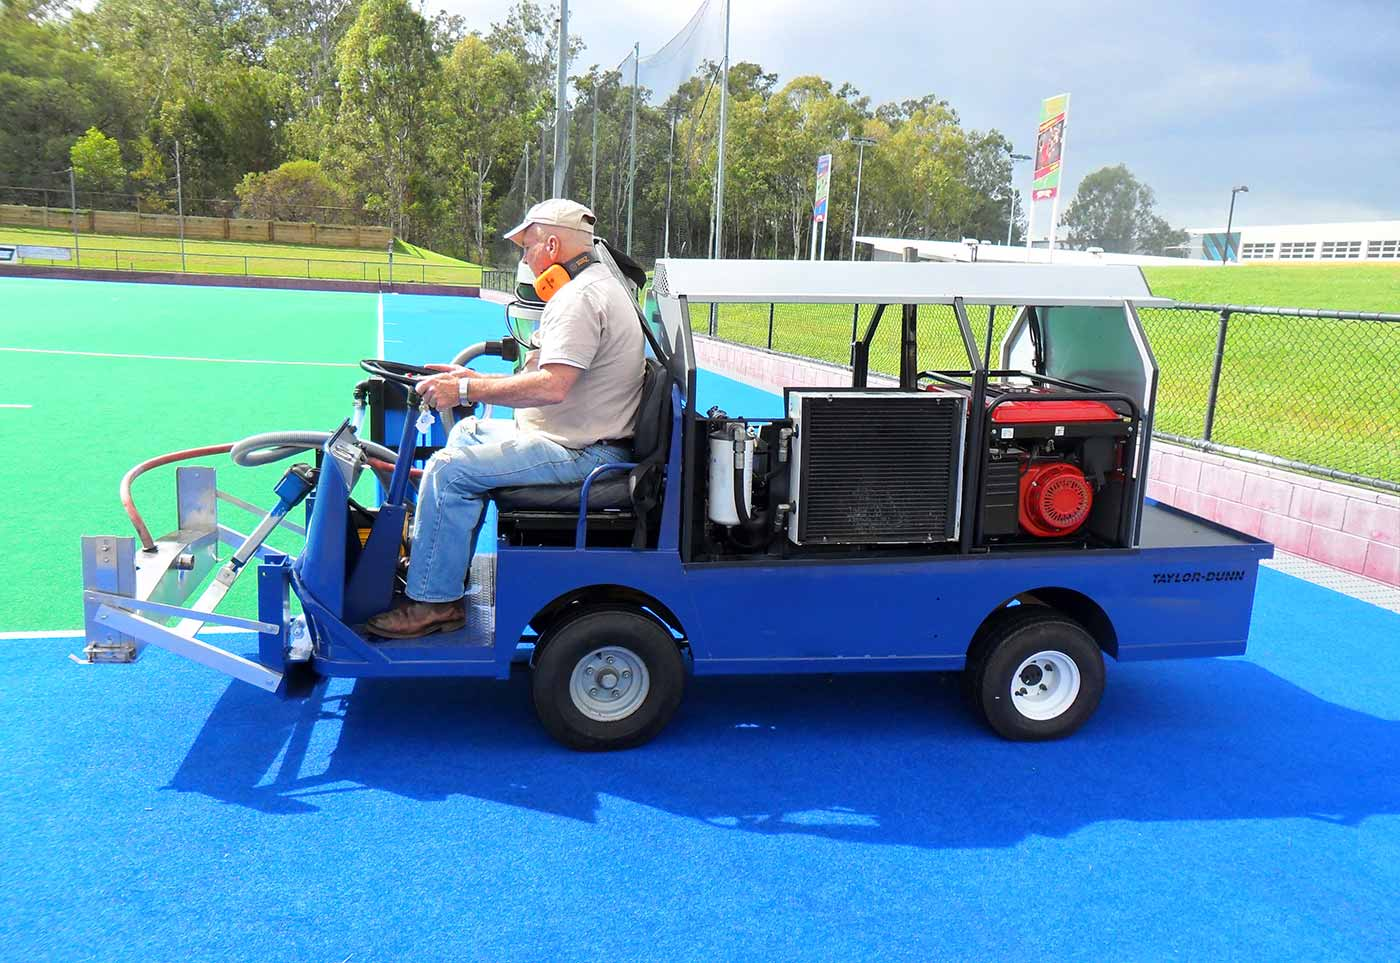 Colour photograph showing a side view of a man sitting on a four-wheeled motorised blue cart. The man steers the cart on a bright blue and green synthetic field surface. - click to view larger image